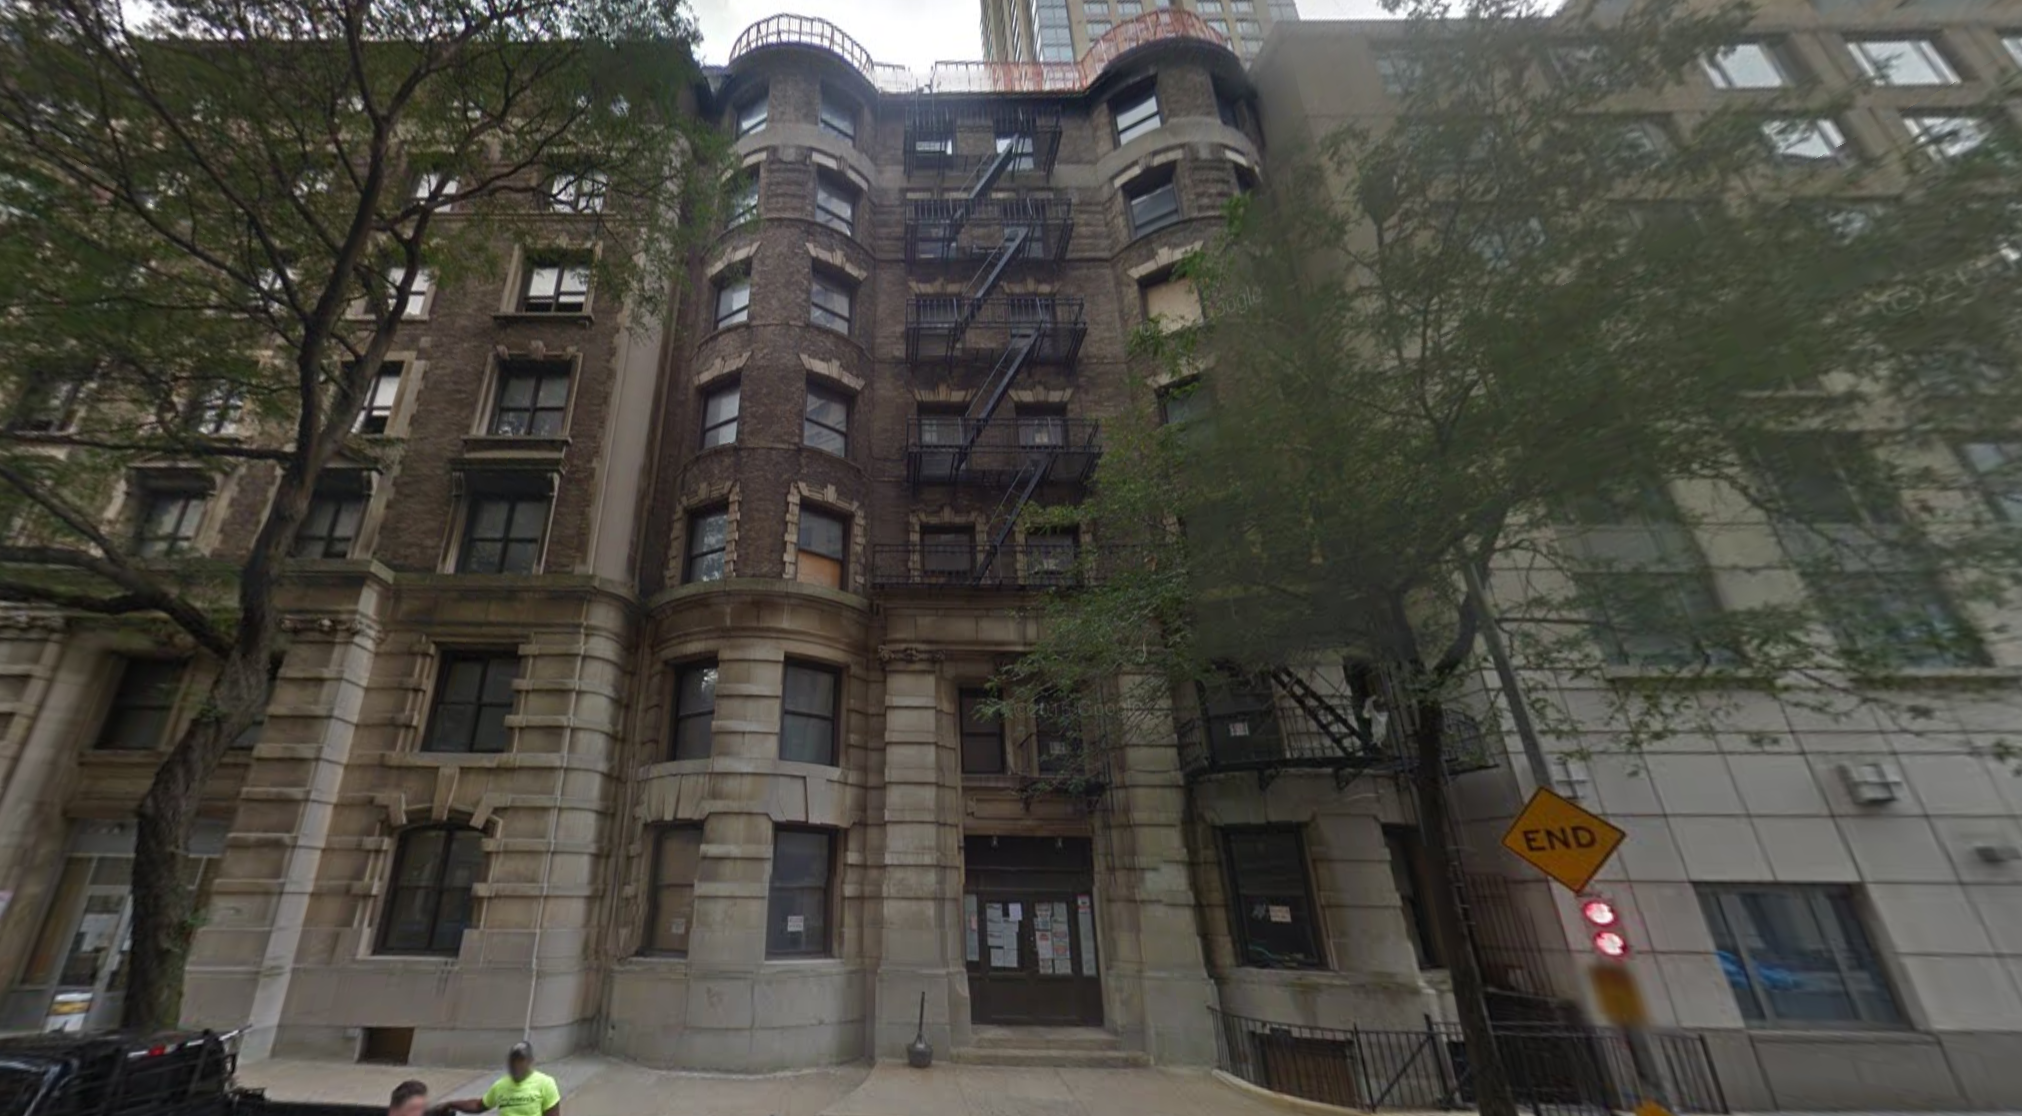 346-350 West 71st Street, image via Google Maps